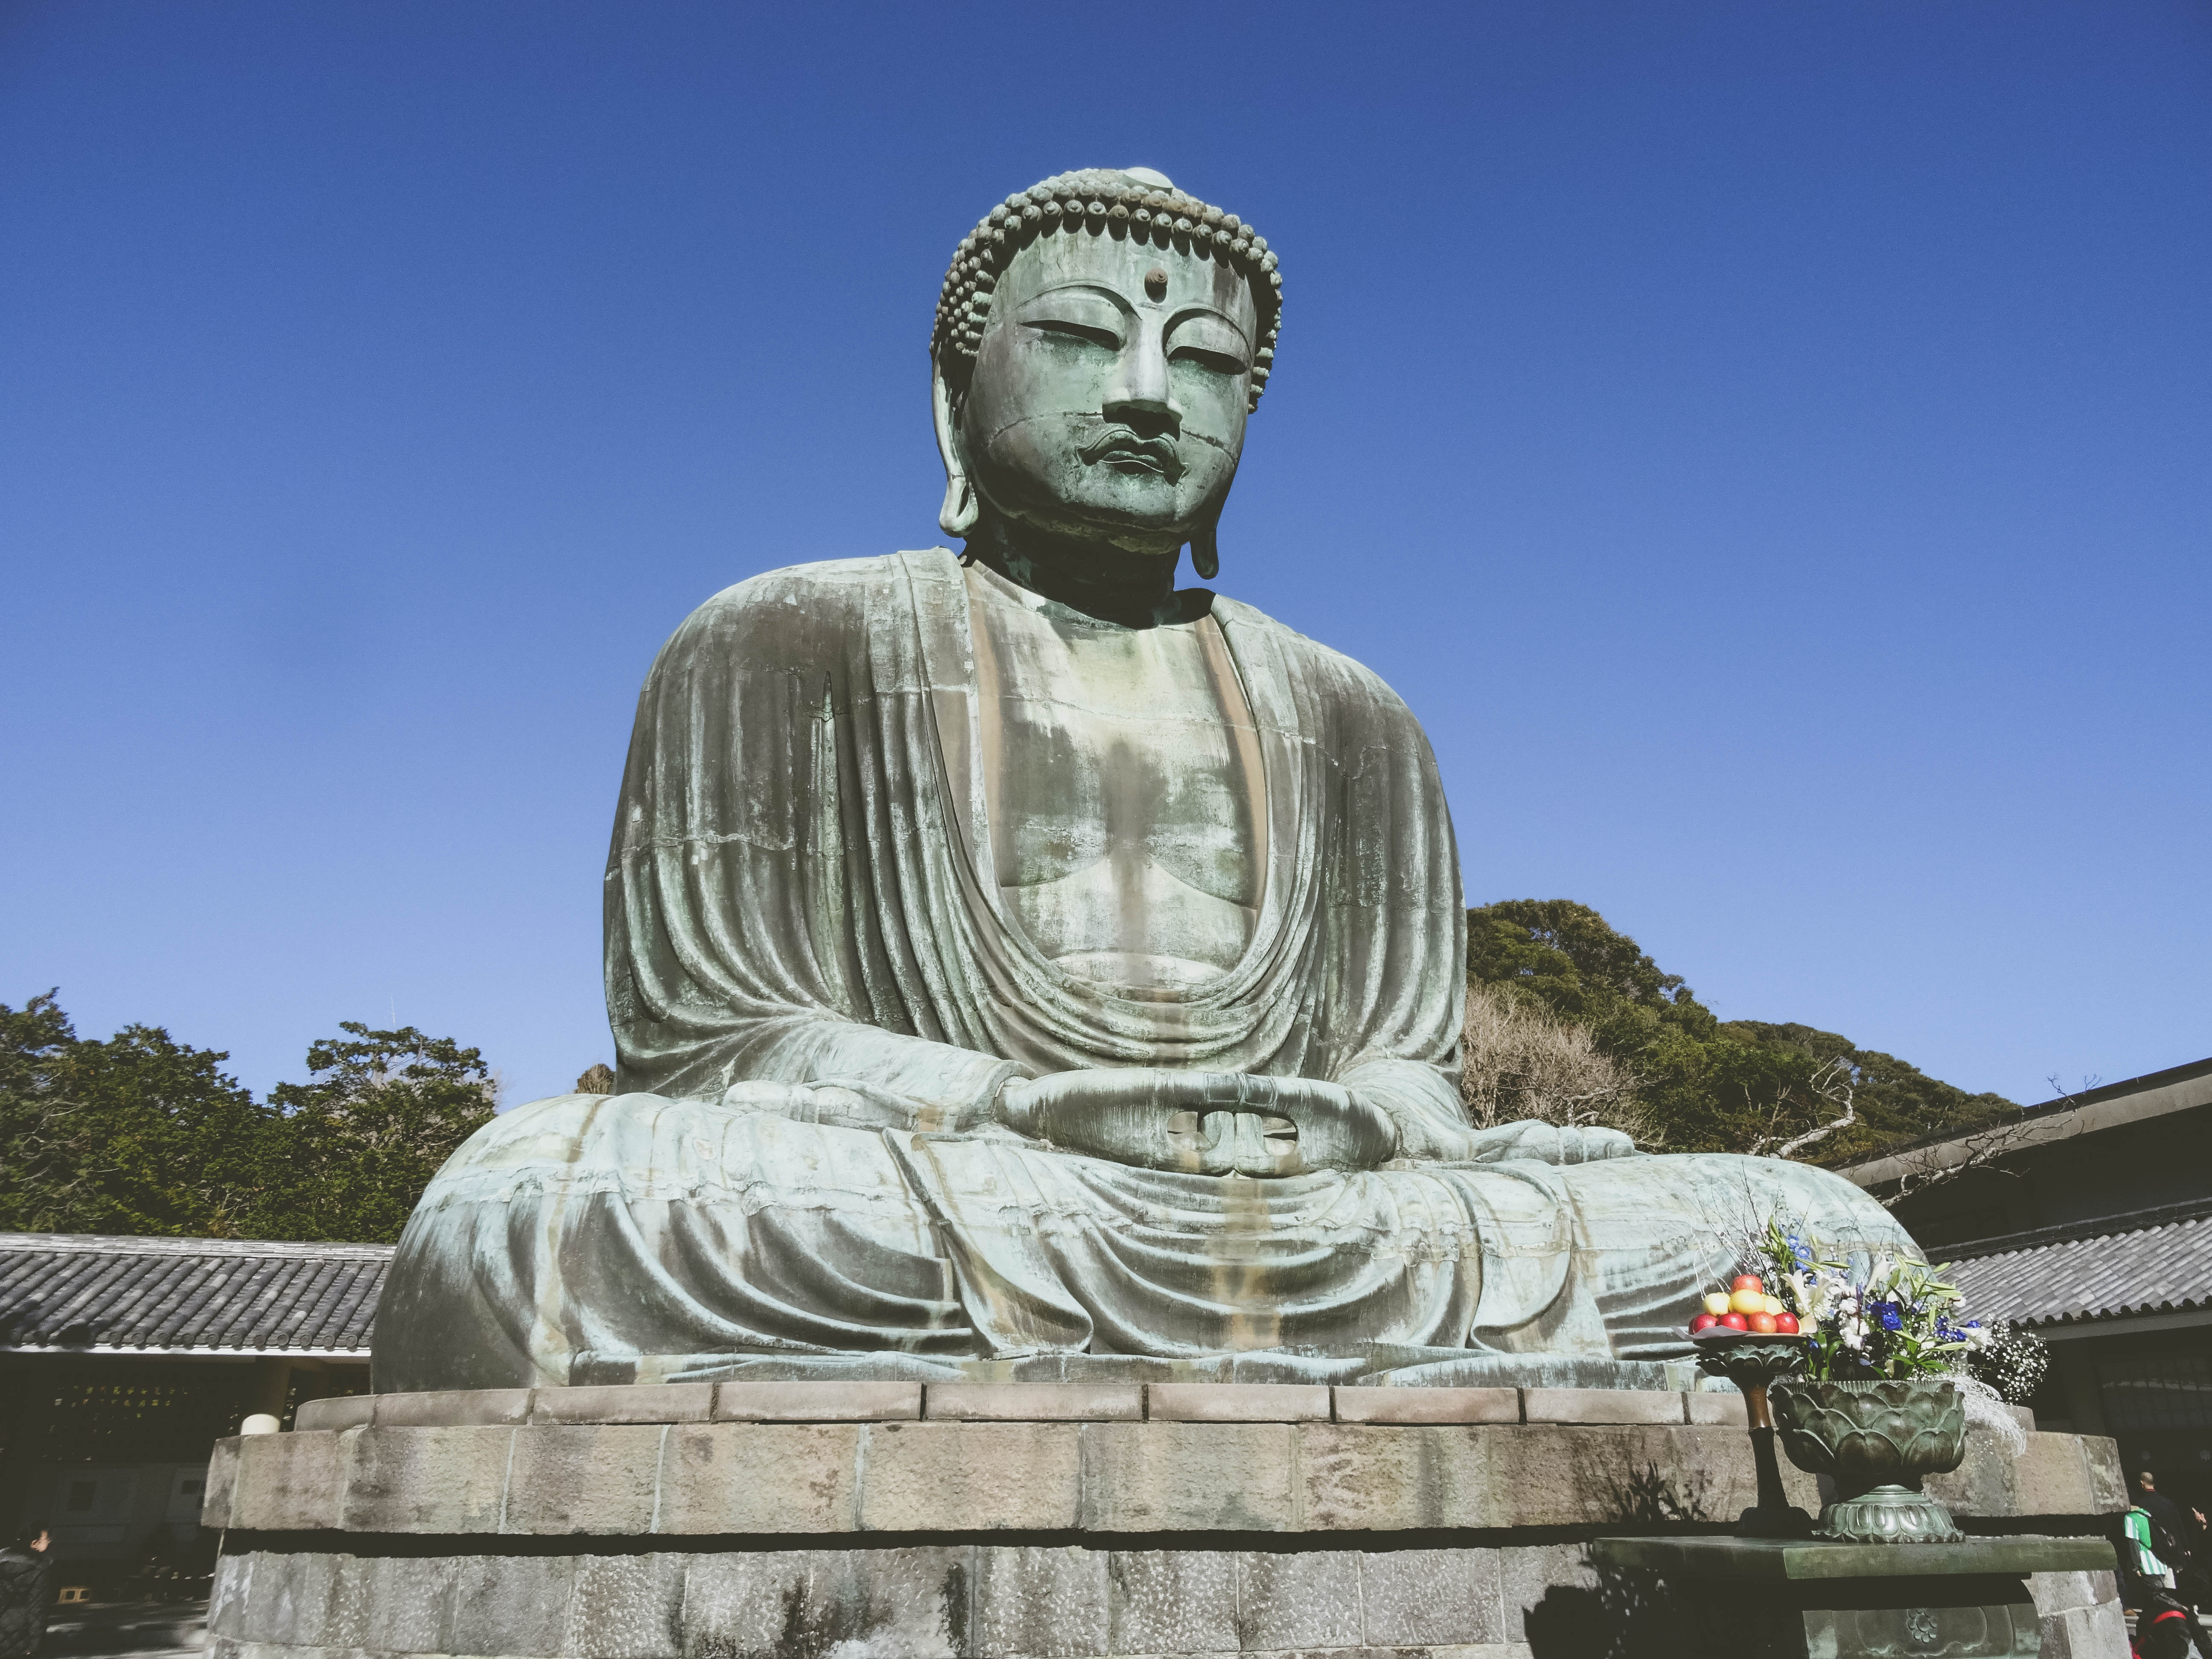 Image for blog article: Le gros Bouddha de Kamakura- The Big Buddha from Kamakura